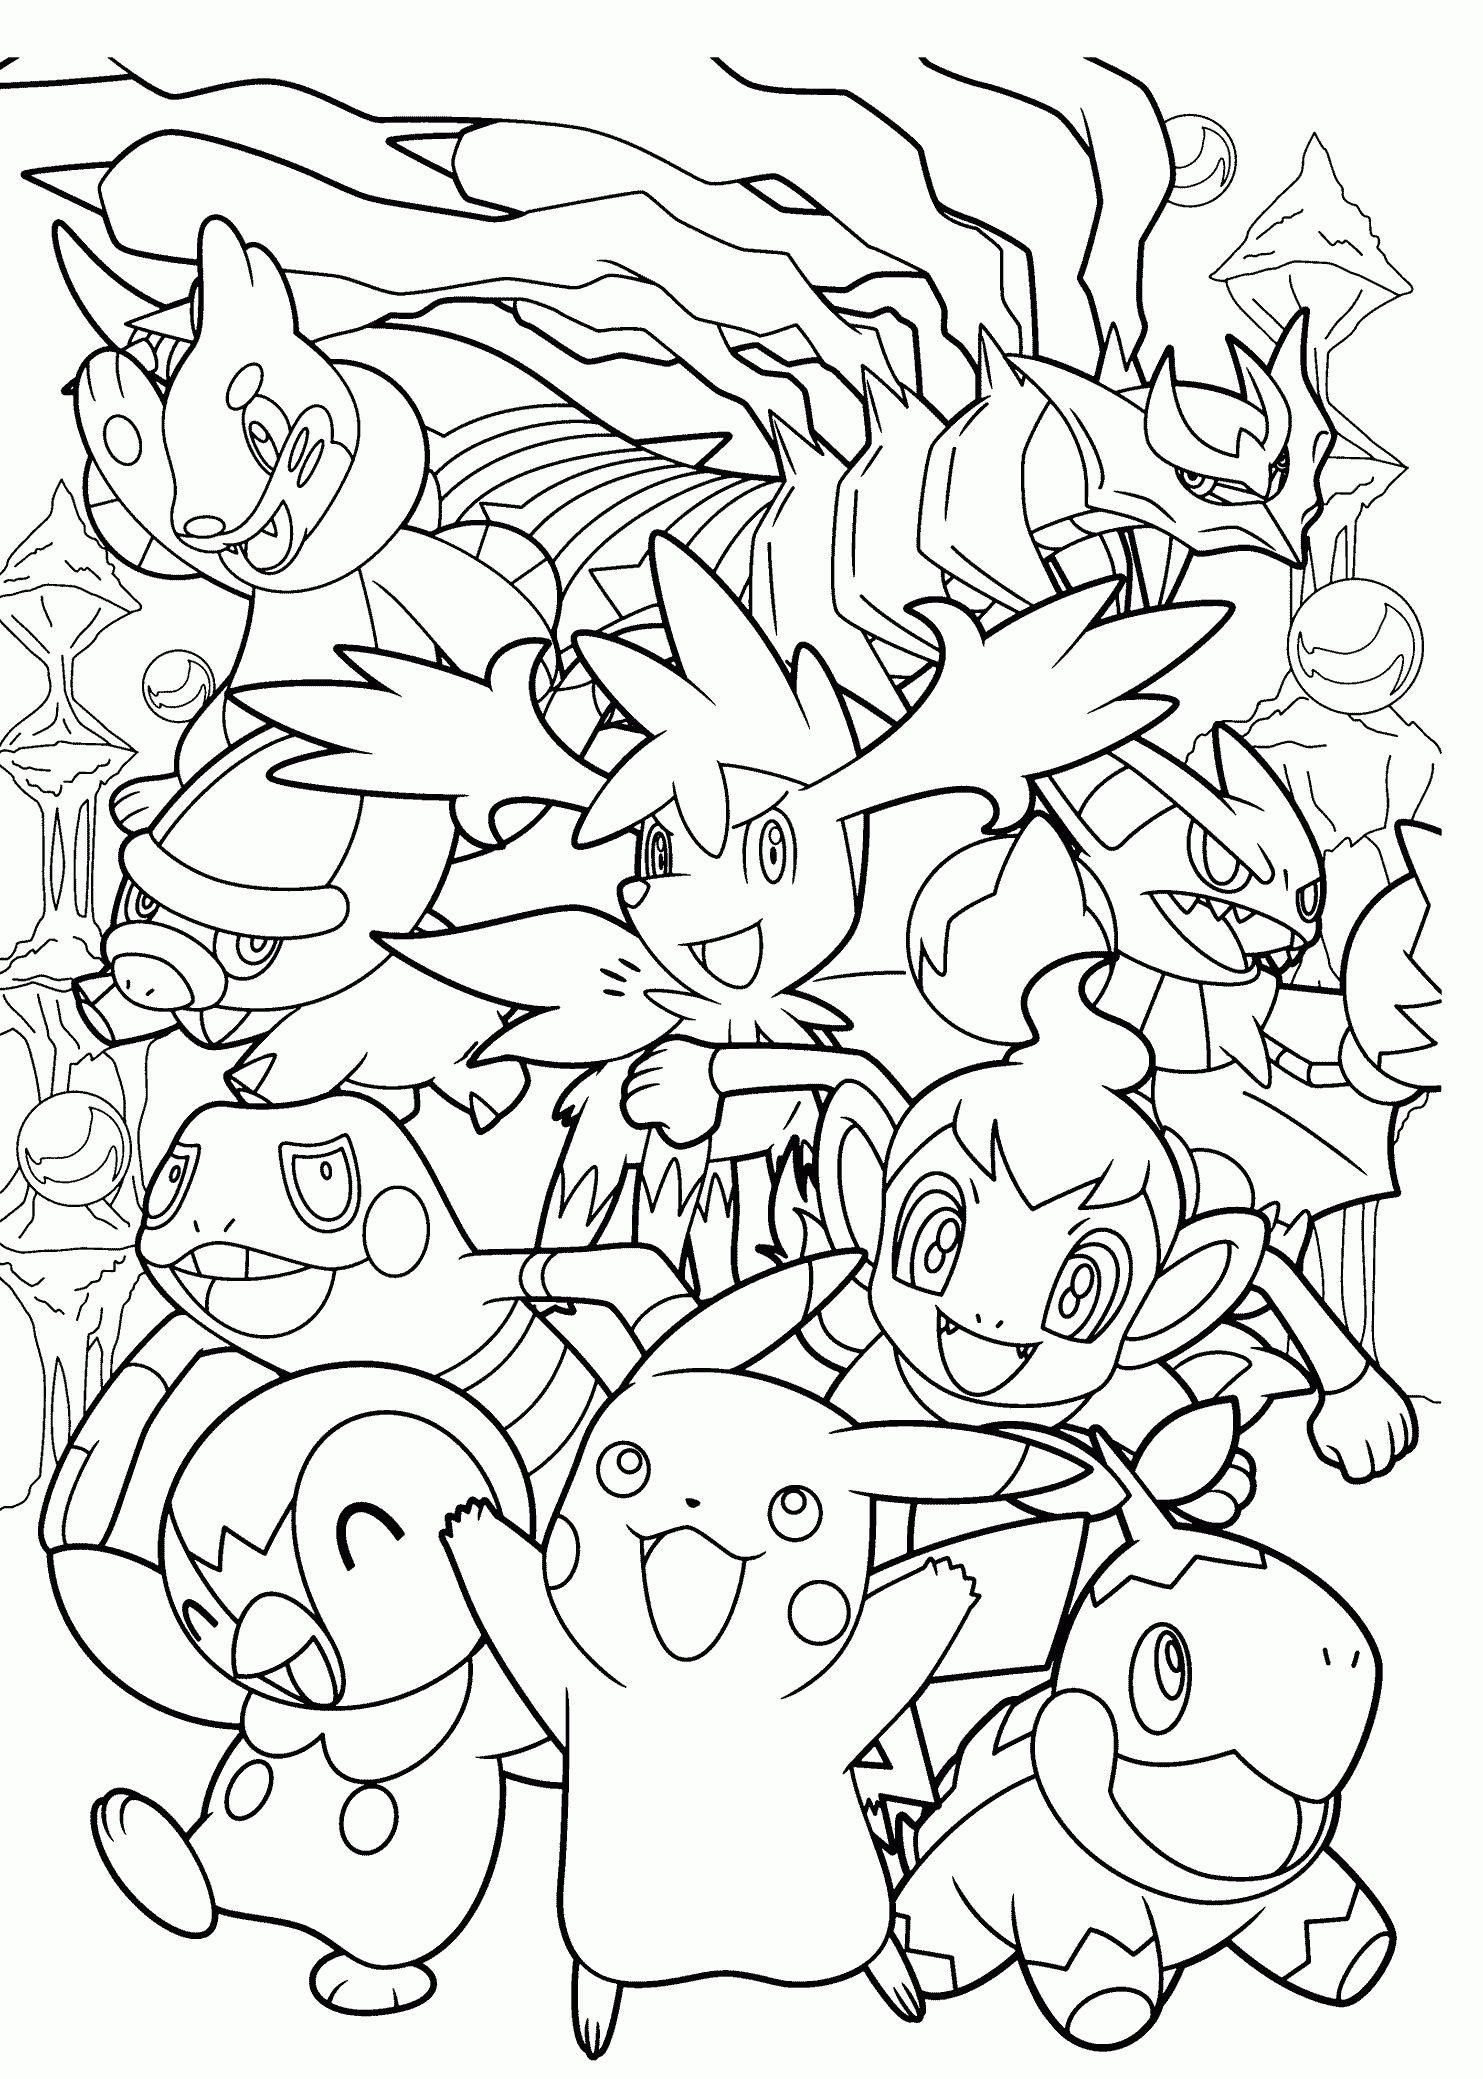 All Pokemon Coloring Pages Pokemon Coloring Sheets Pokemon Coloring Pikachu Coloring Page